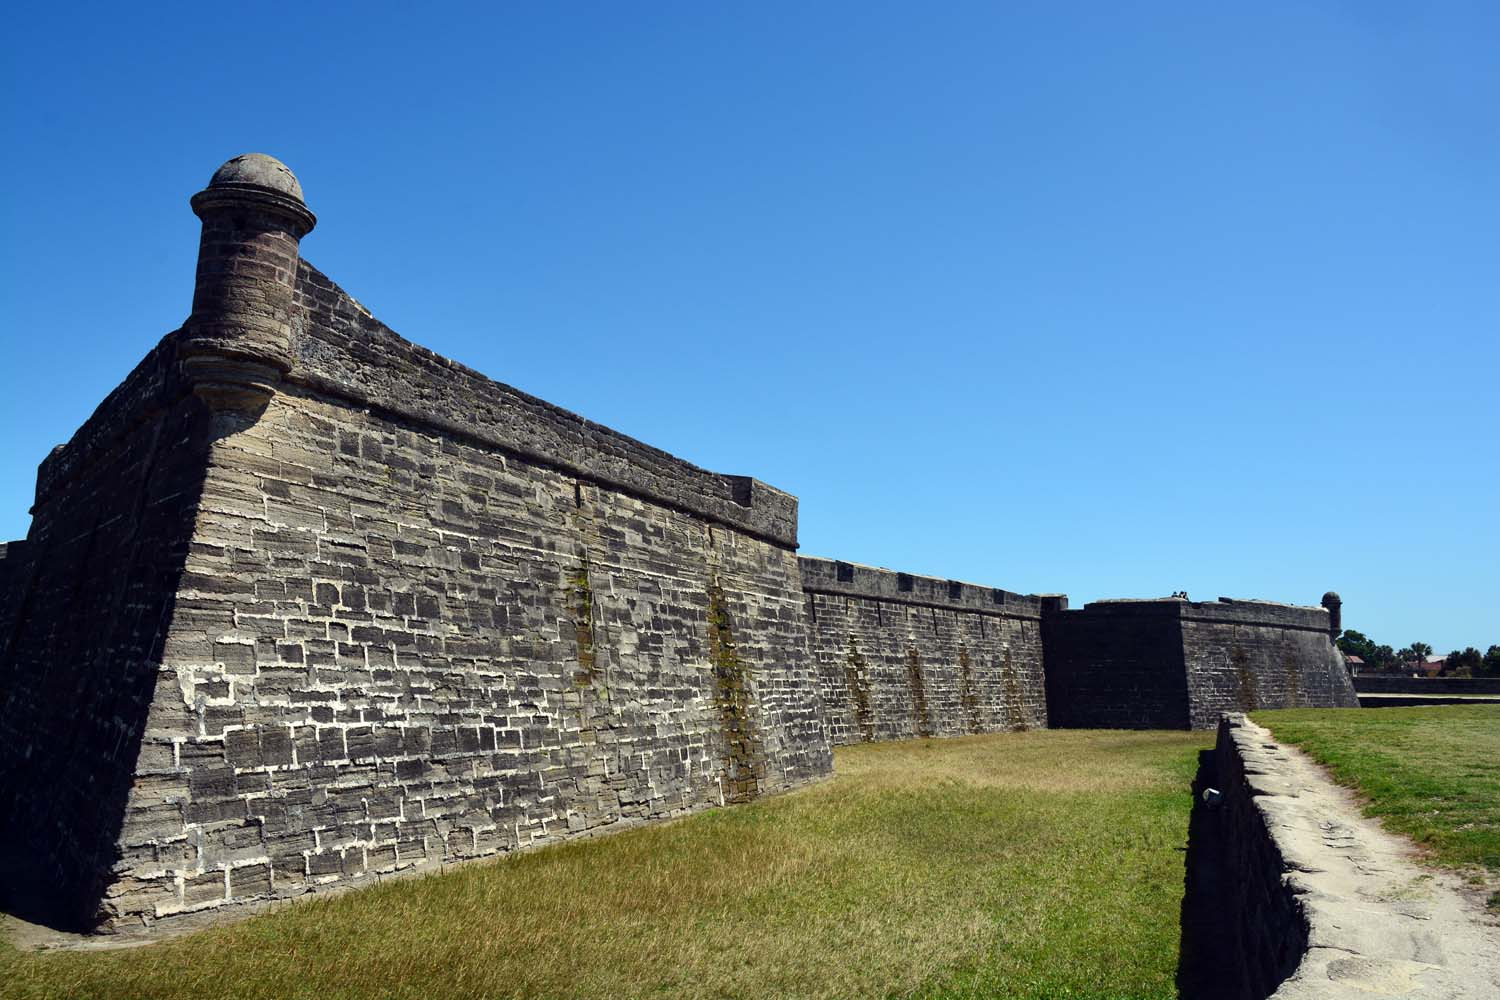 Castillo de san Marcos west wall still looking good